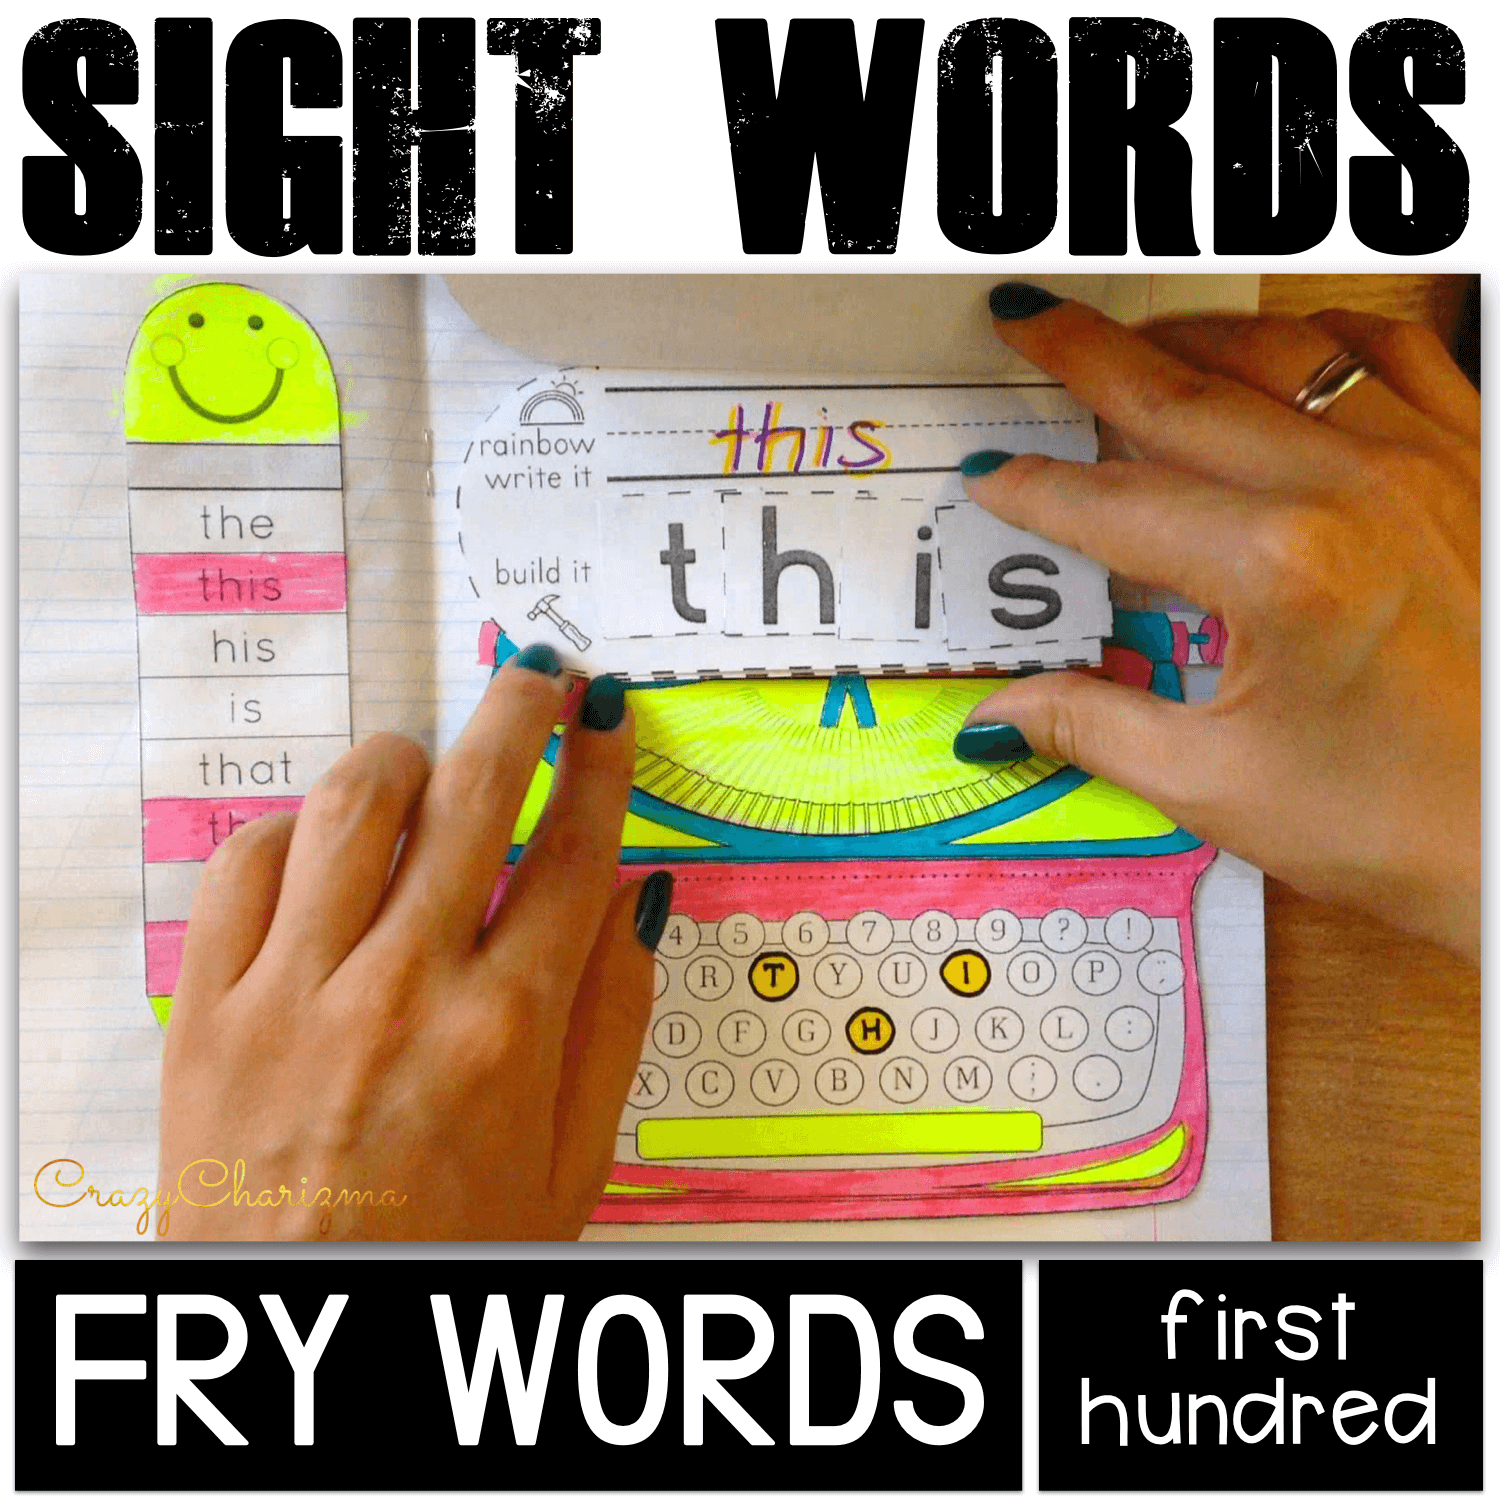 Need hands-on and fun sight words activities? Grab the packet and use as an Interactive Notebook (organize kids' materials like a portfolio show progress throughout the year). More ways to use: as Word Work Activities or No-prep literacy centers. #CrazyCharizma #HandsOnActivitiesForKids #PhonicsActivities